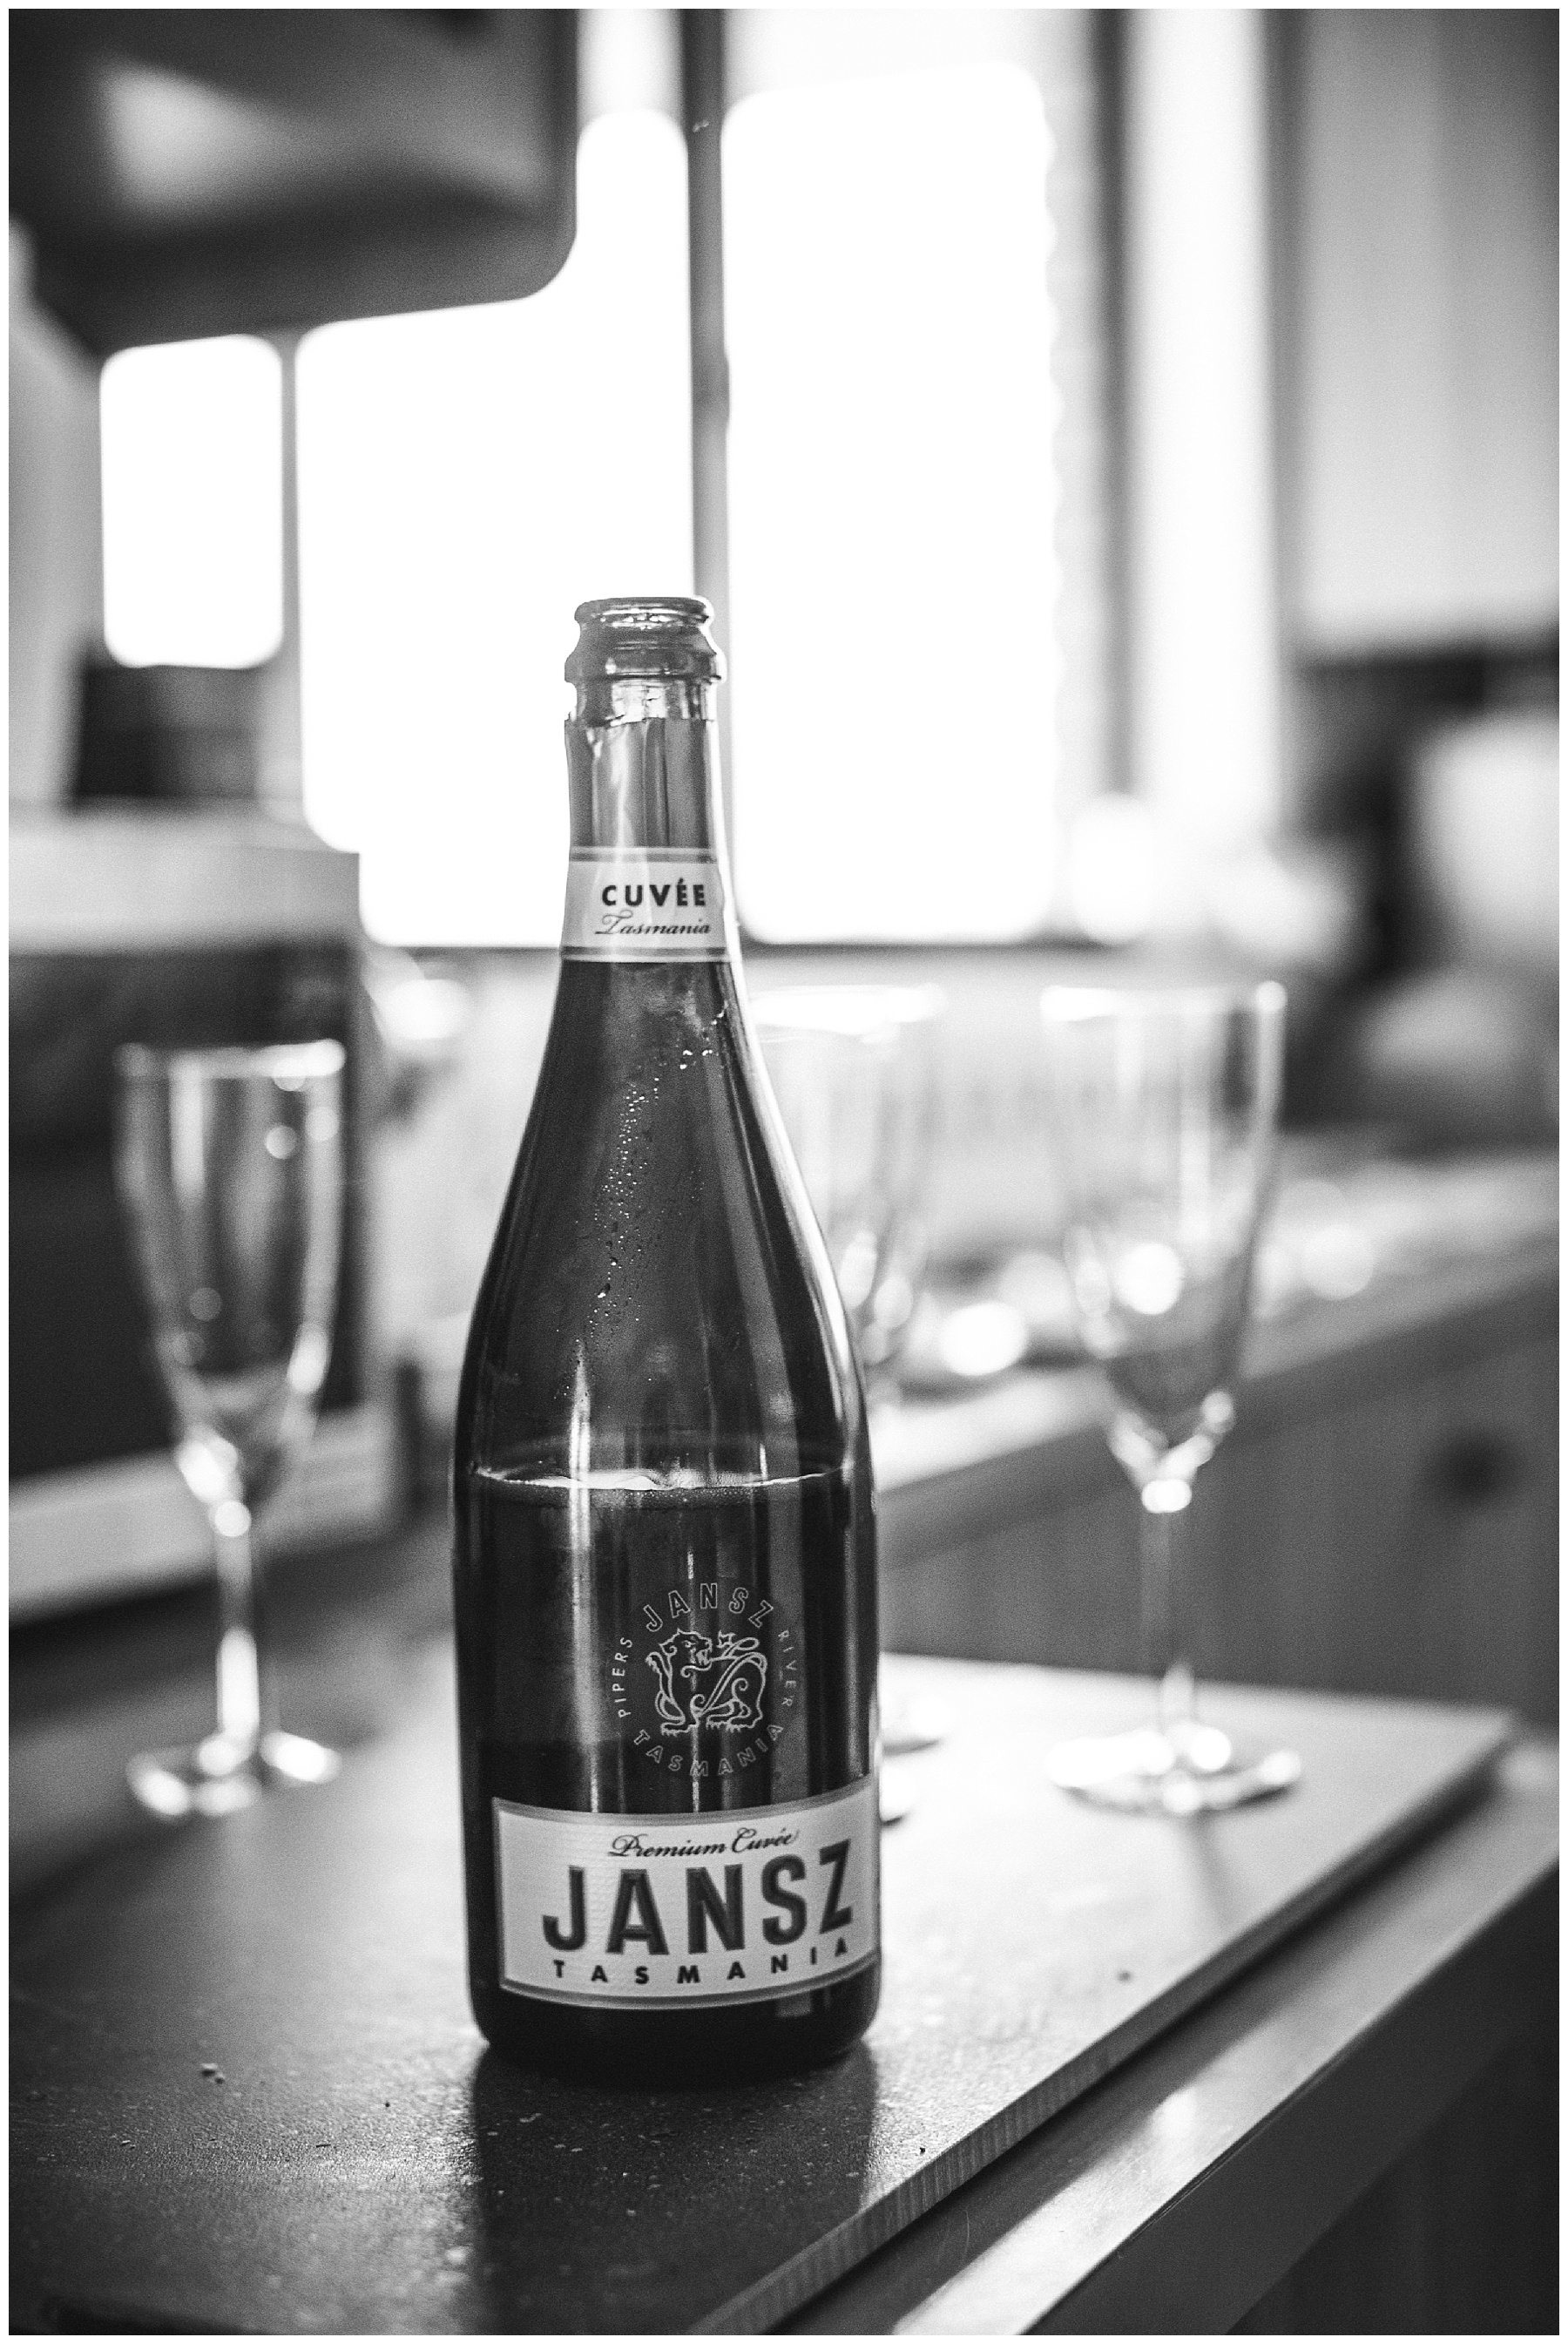 Jansz champagne bottle